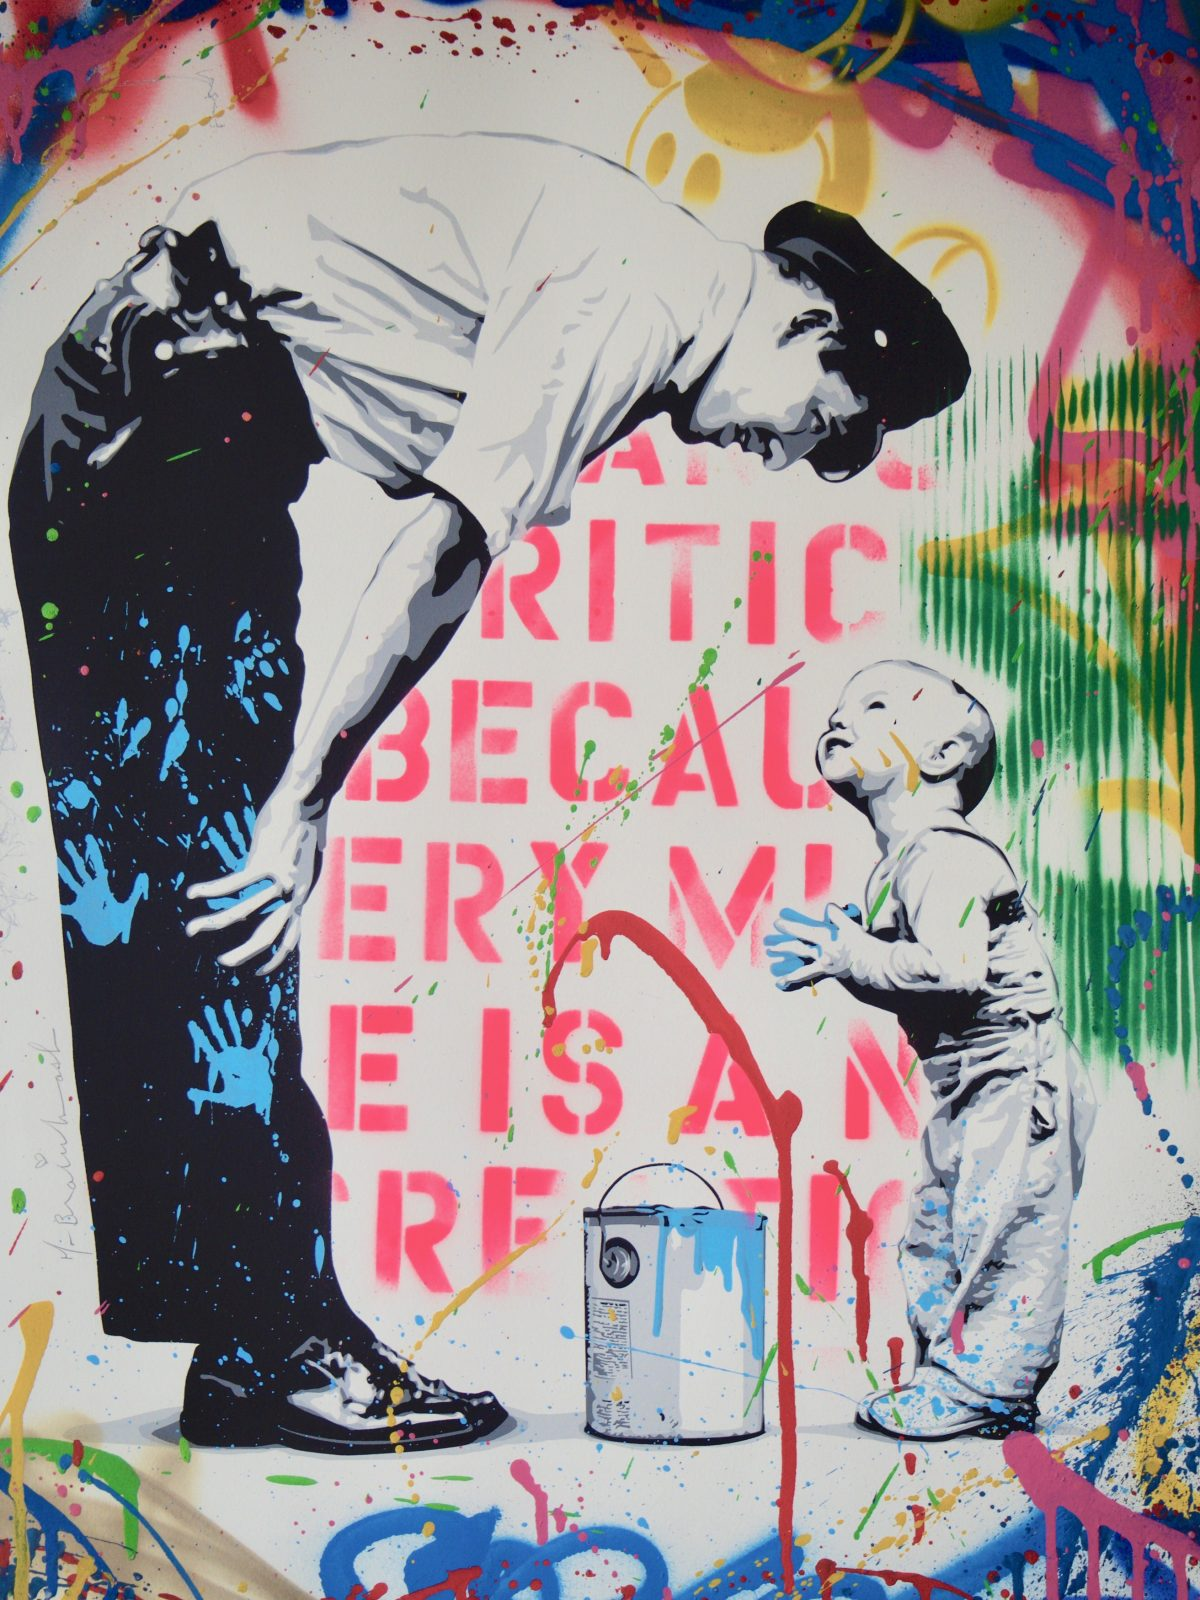 Mr. Brainwash - Not Guilty